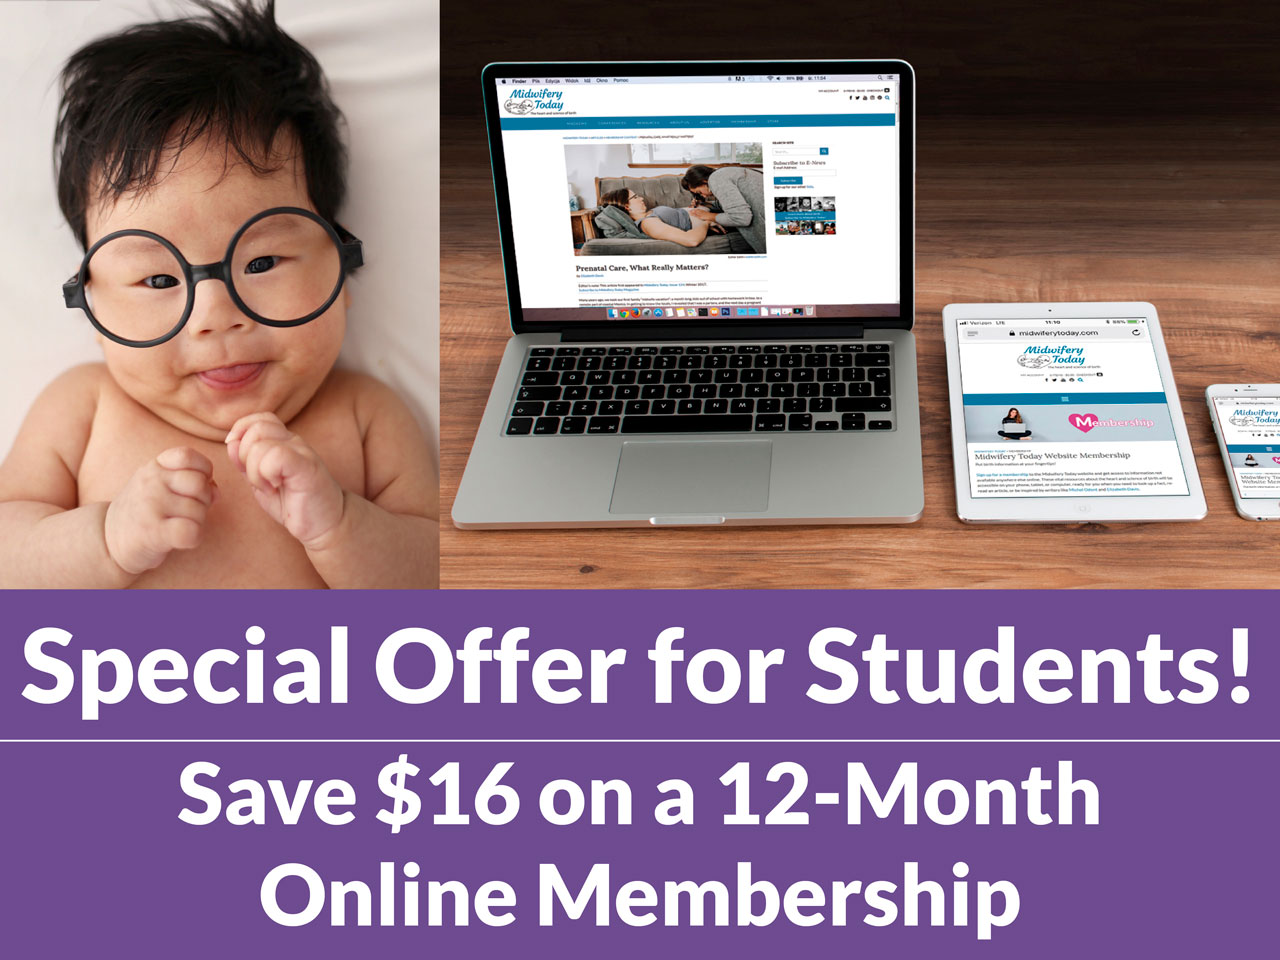 Students save $16 on a 12 month membership